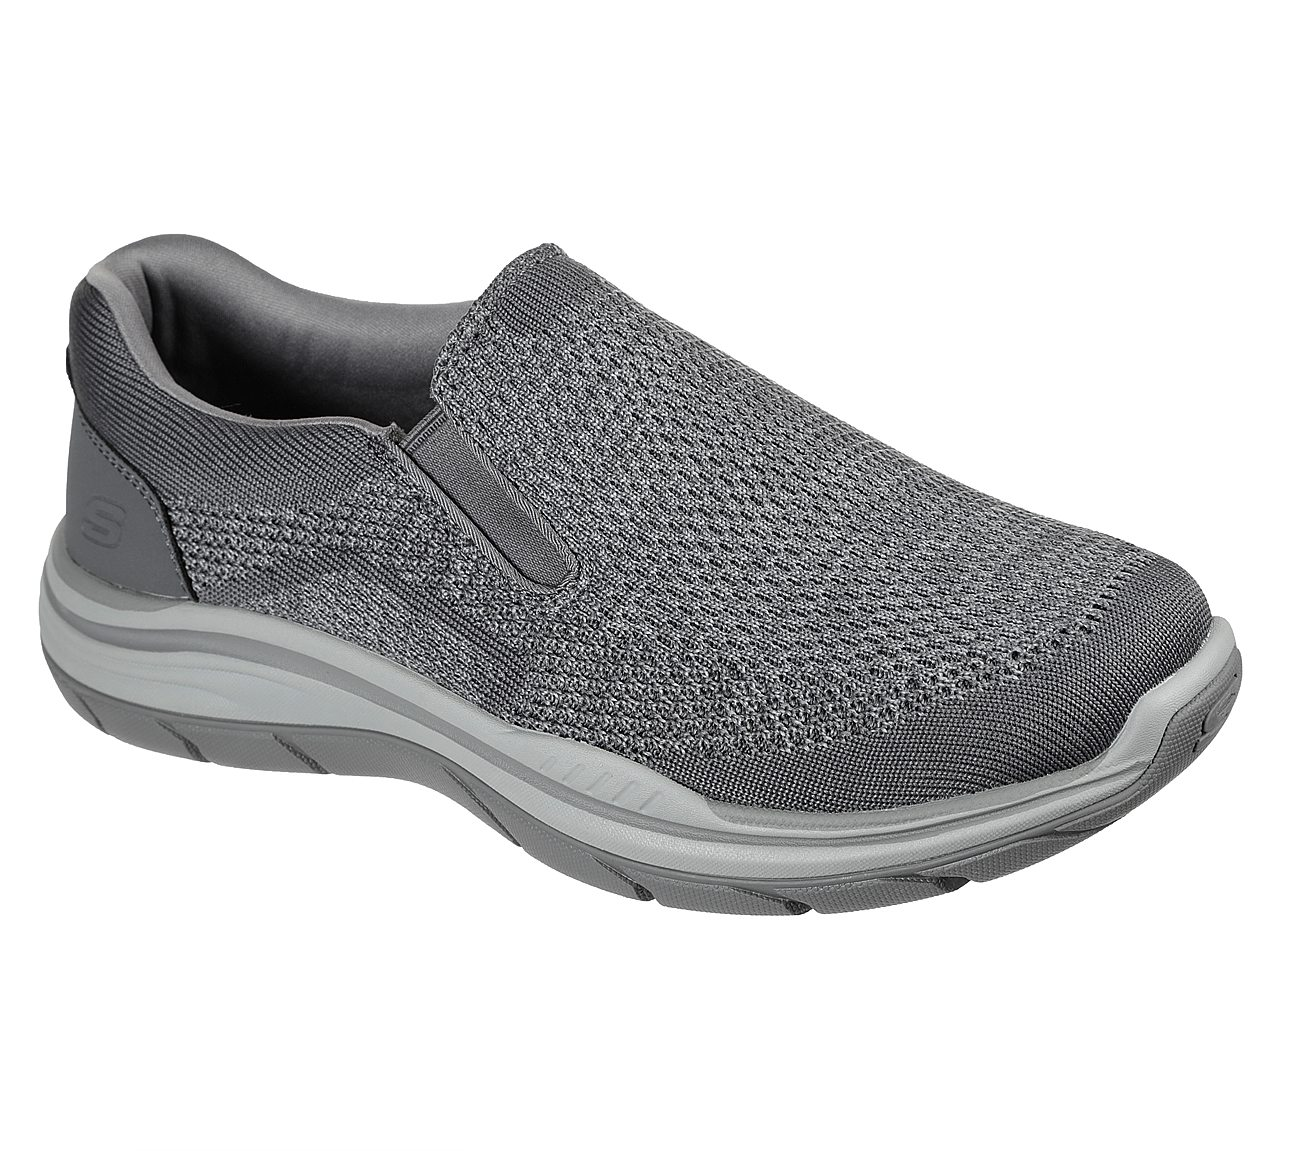 skechers relaxed fit slippers